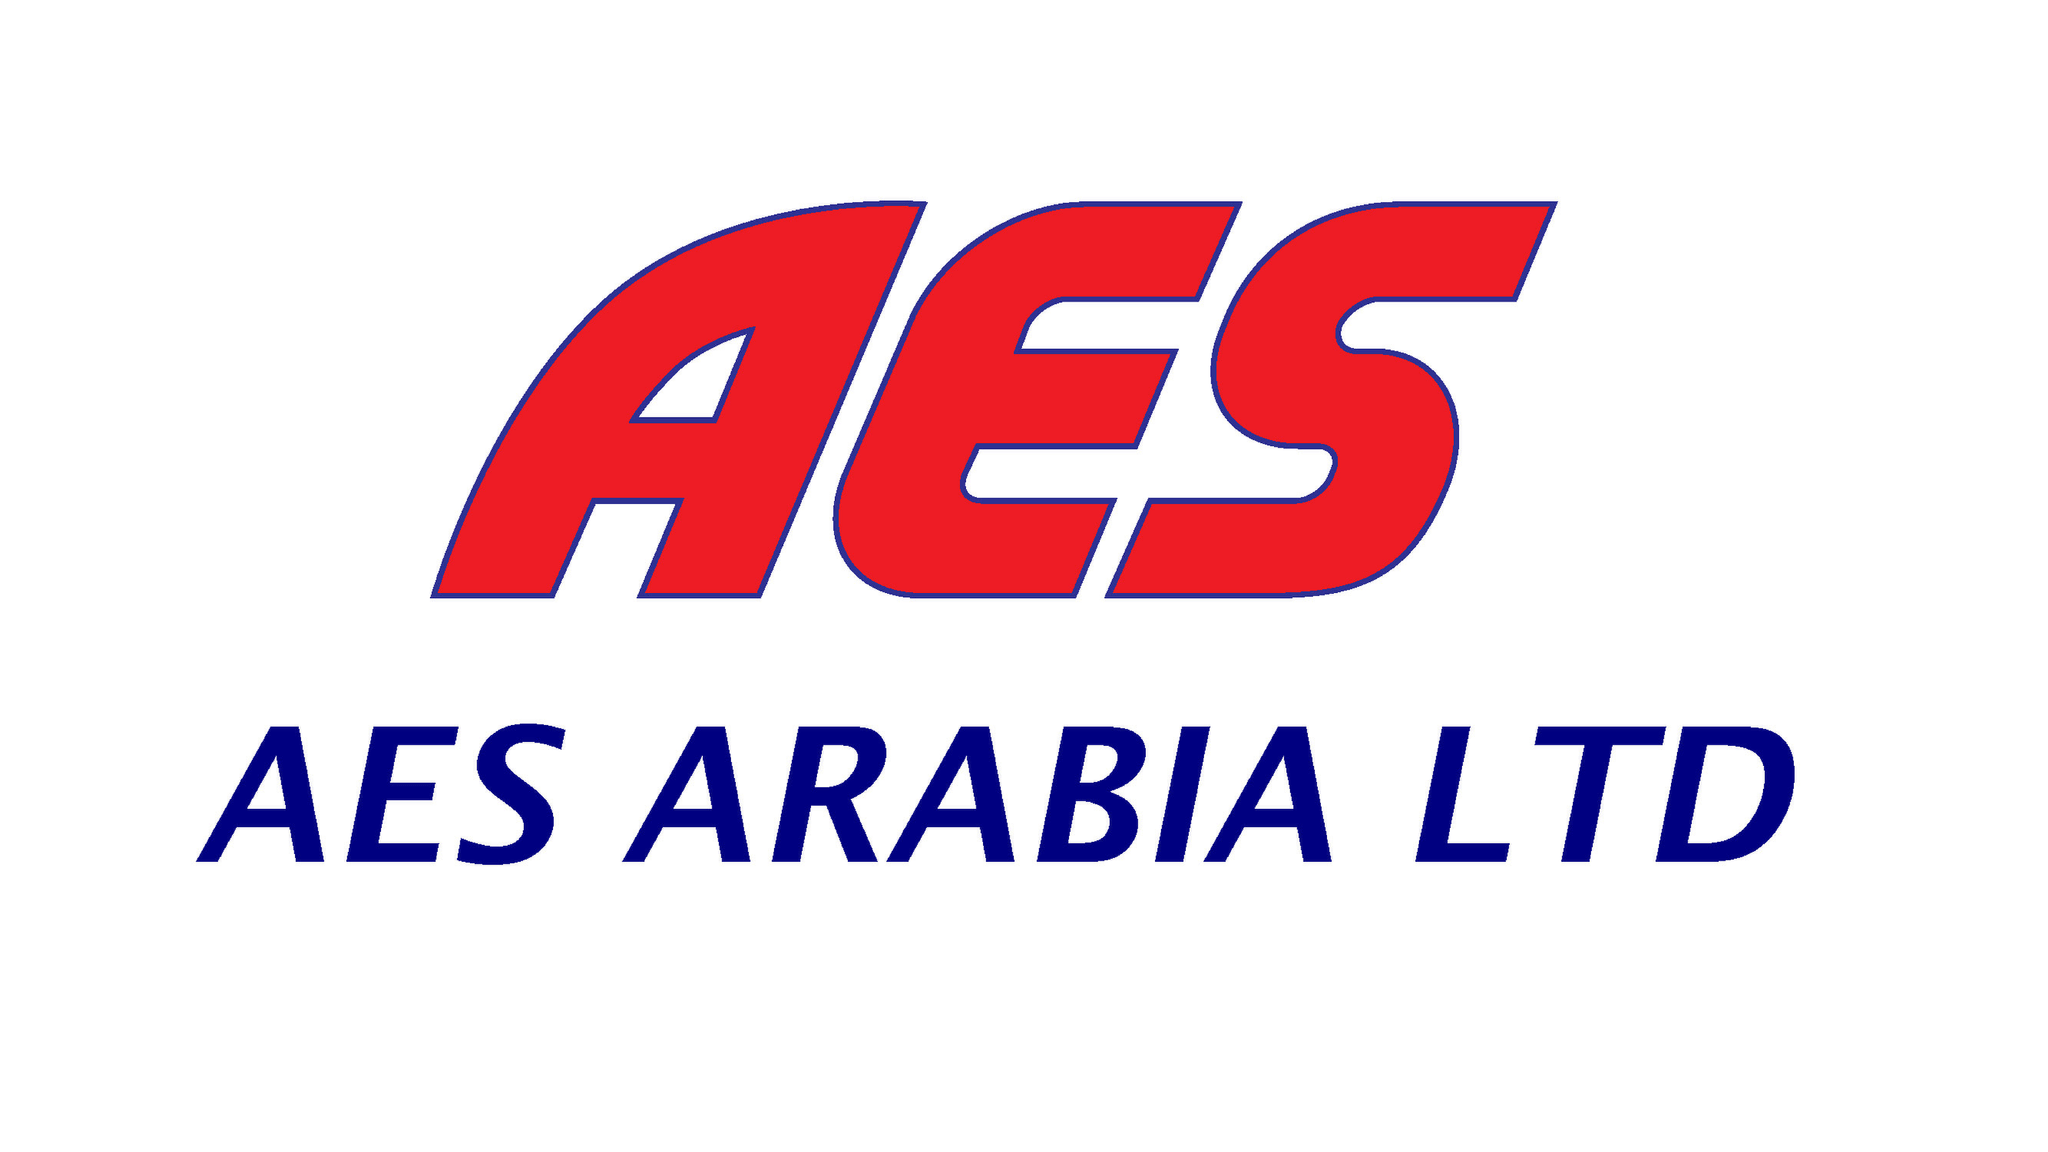 AES ARABIA LTD.